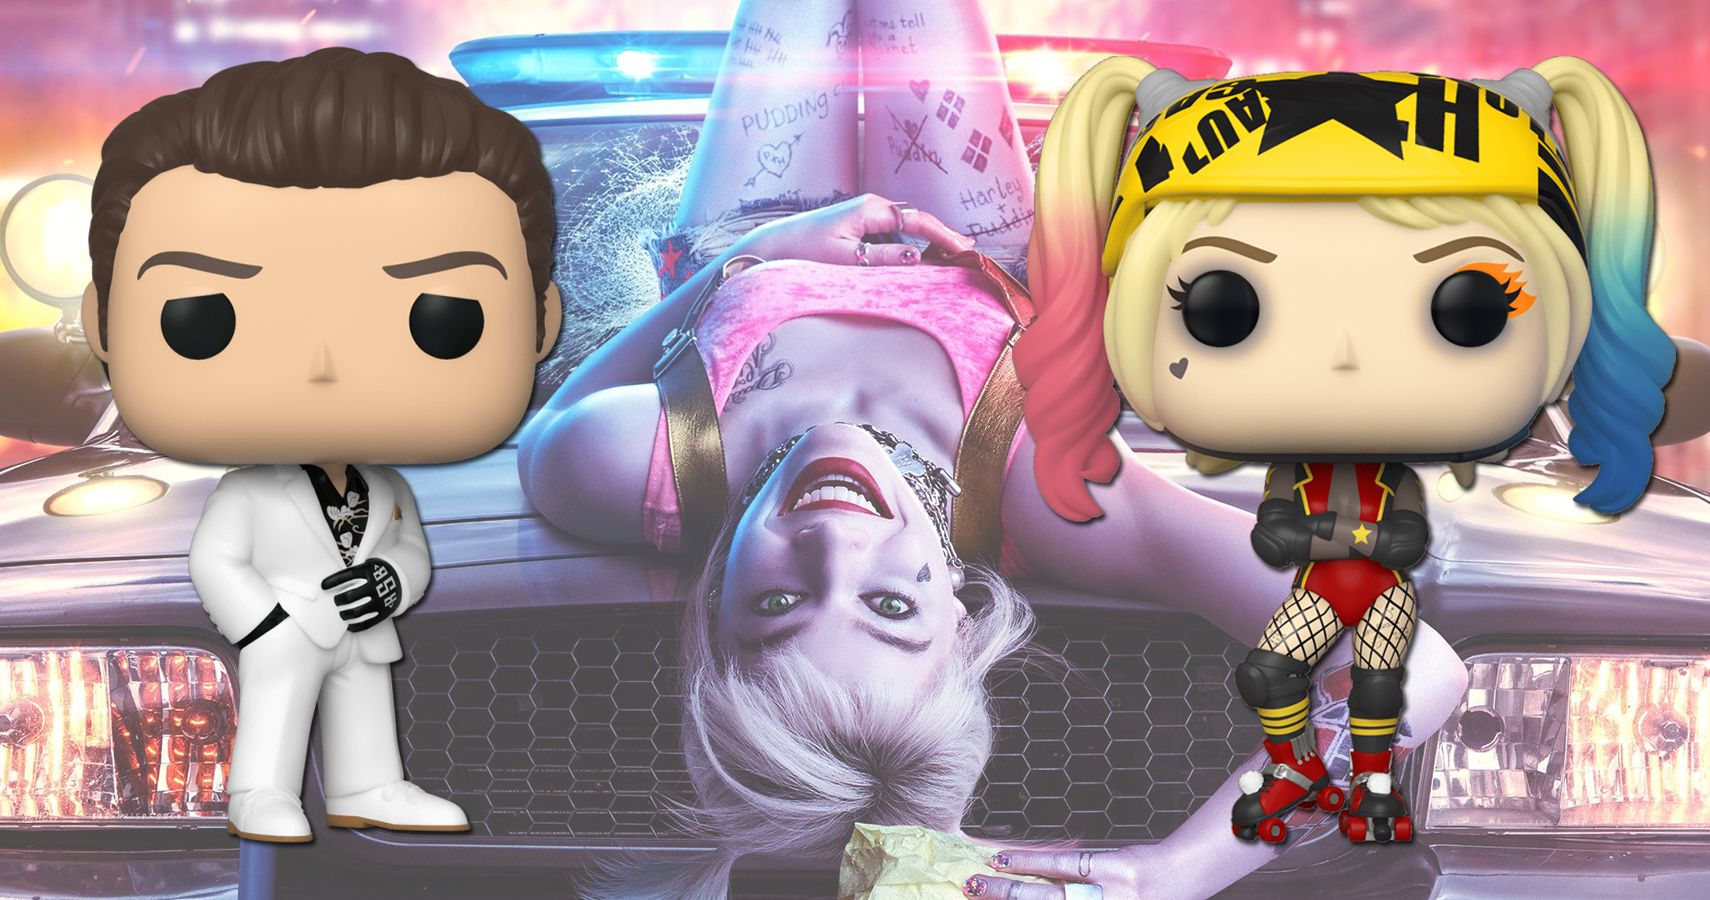 Birds Of Prey And The Funko Pops Of One Harley Quinn